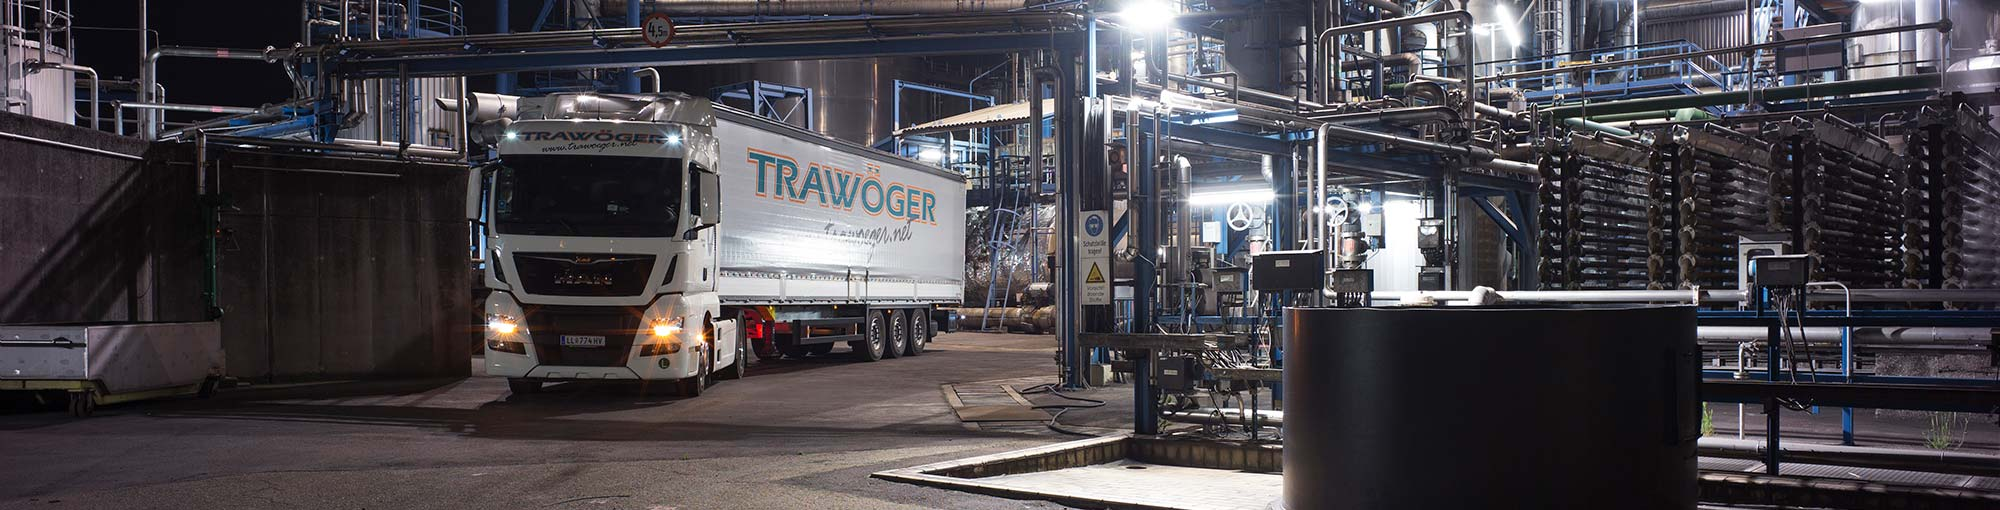 TRAWÖGER TRANSPORT GMBH